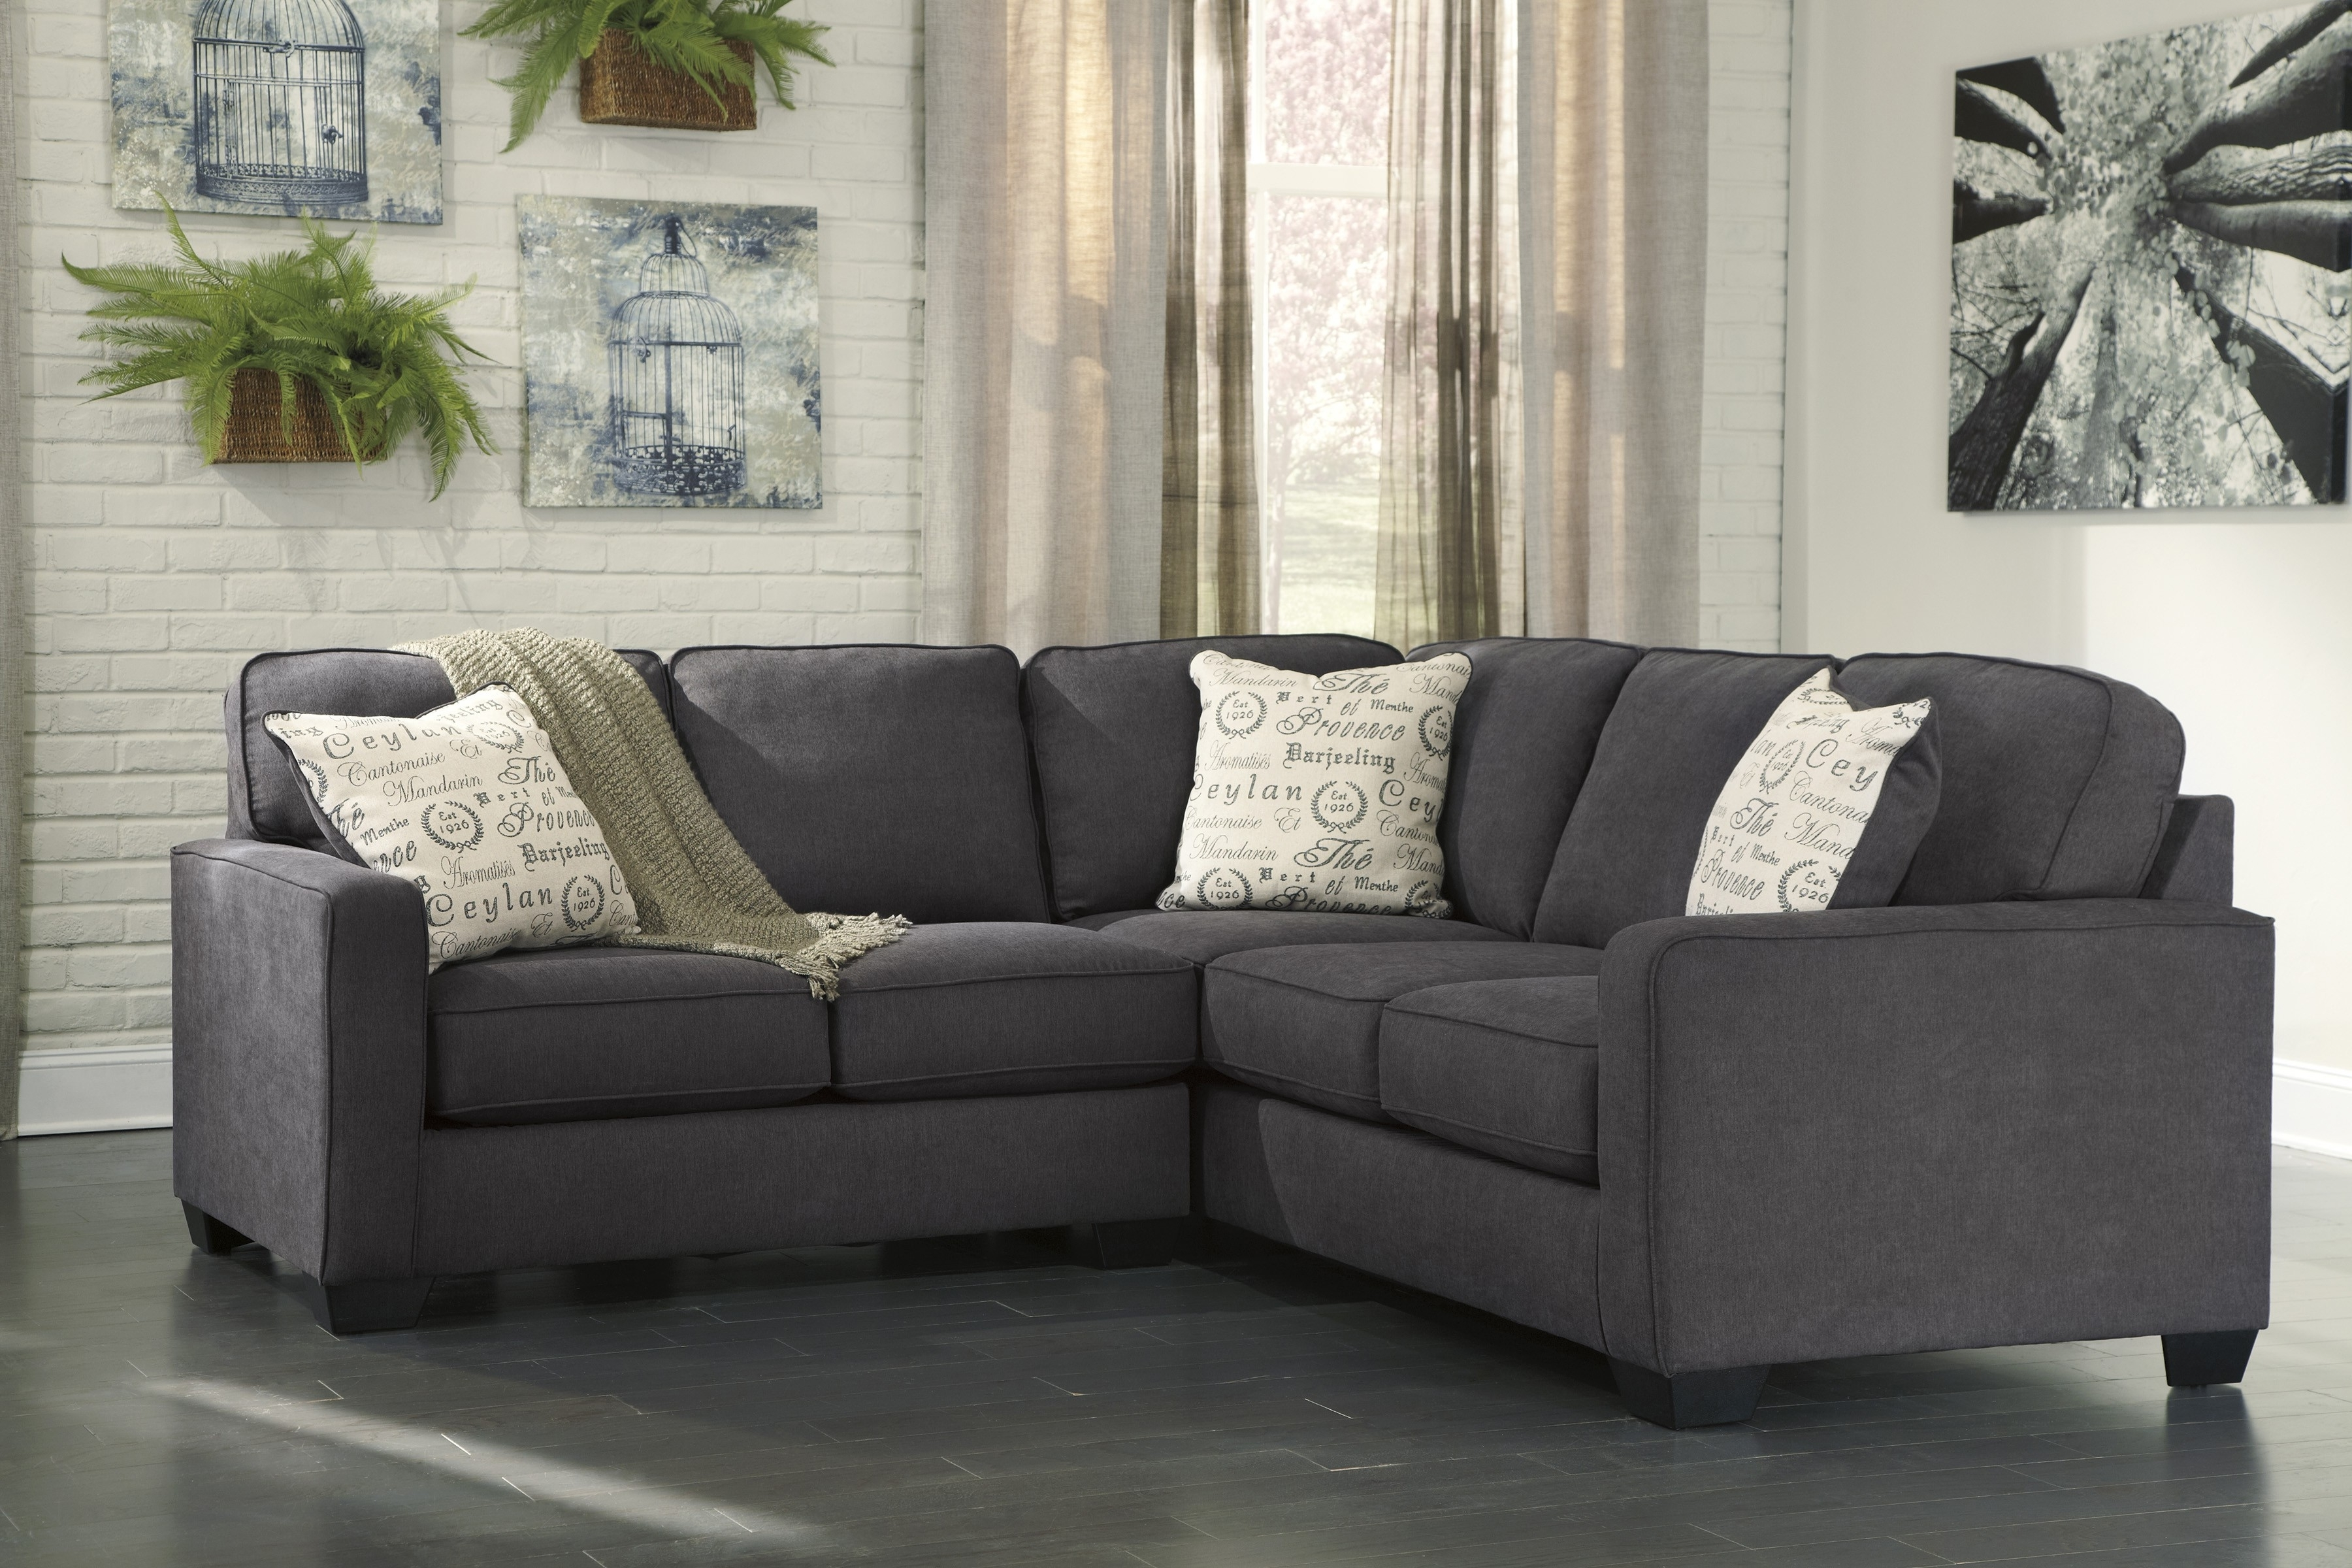 2 Piece Sectional Sofas With Chaise Intended For 2018 Alenya Charcoal 2 Piece Sectional Sofa For $ (View 10 of 15)